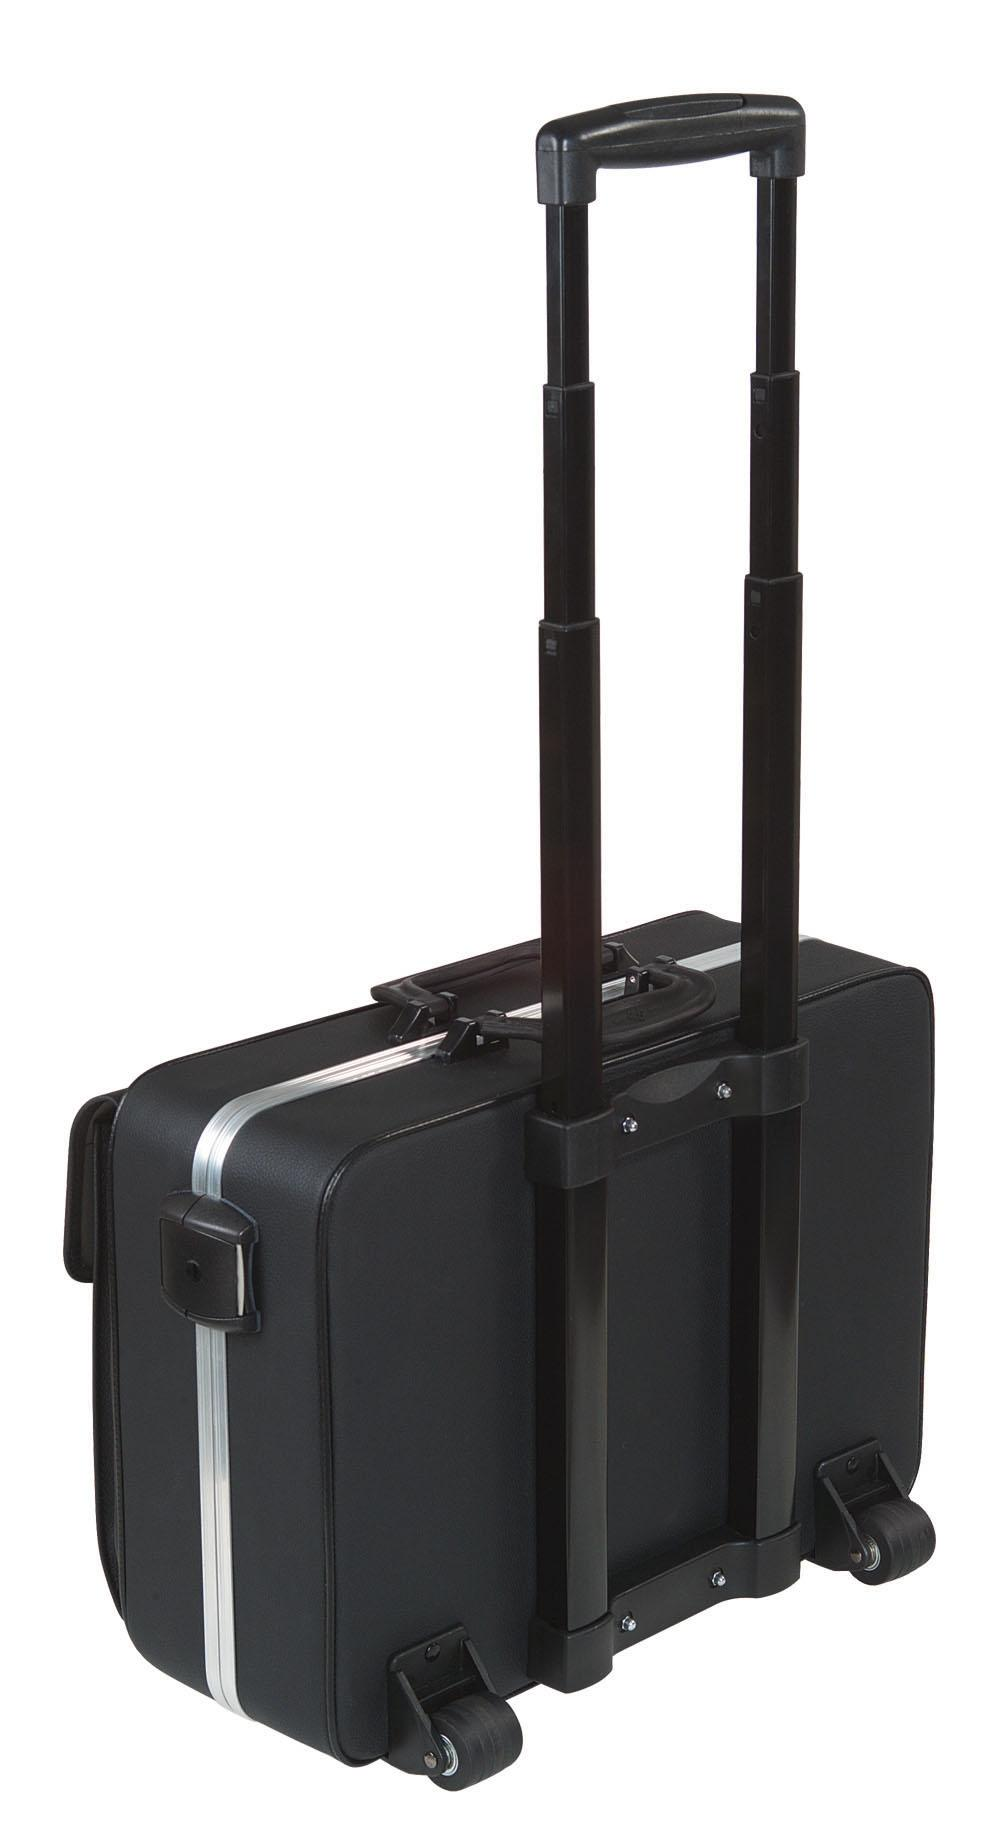 DRS BAG BOLLMANN NOVA TROLLEY BLACK (1.18.321)